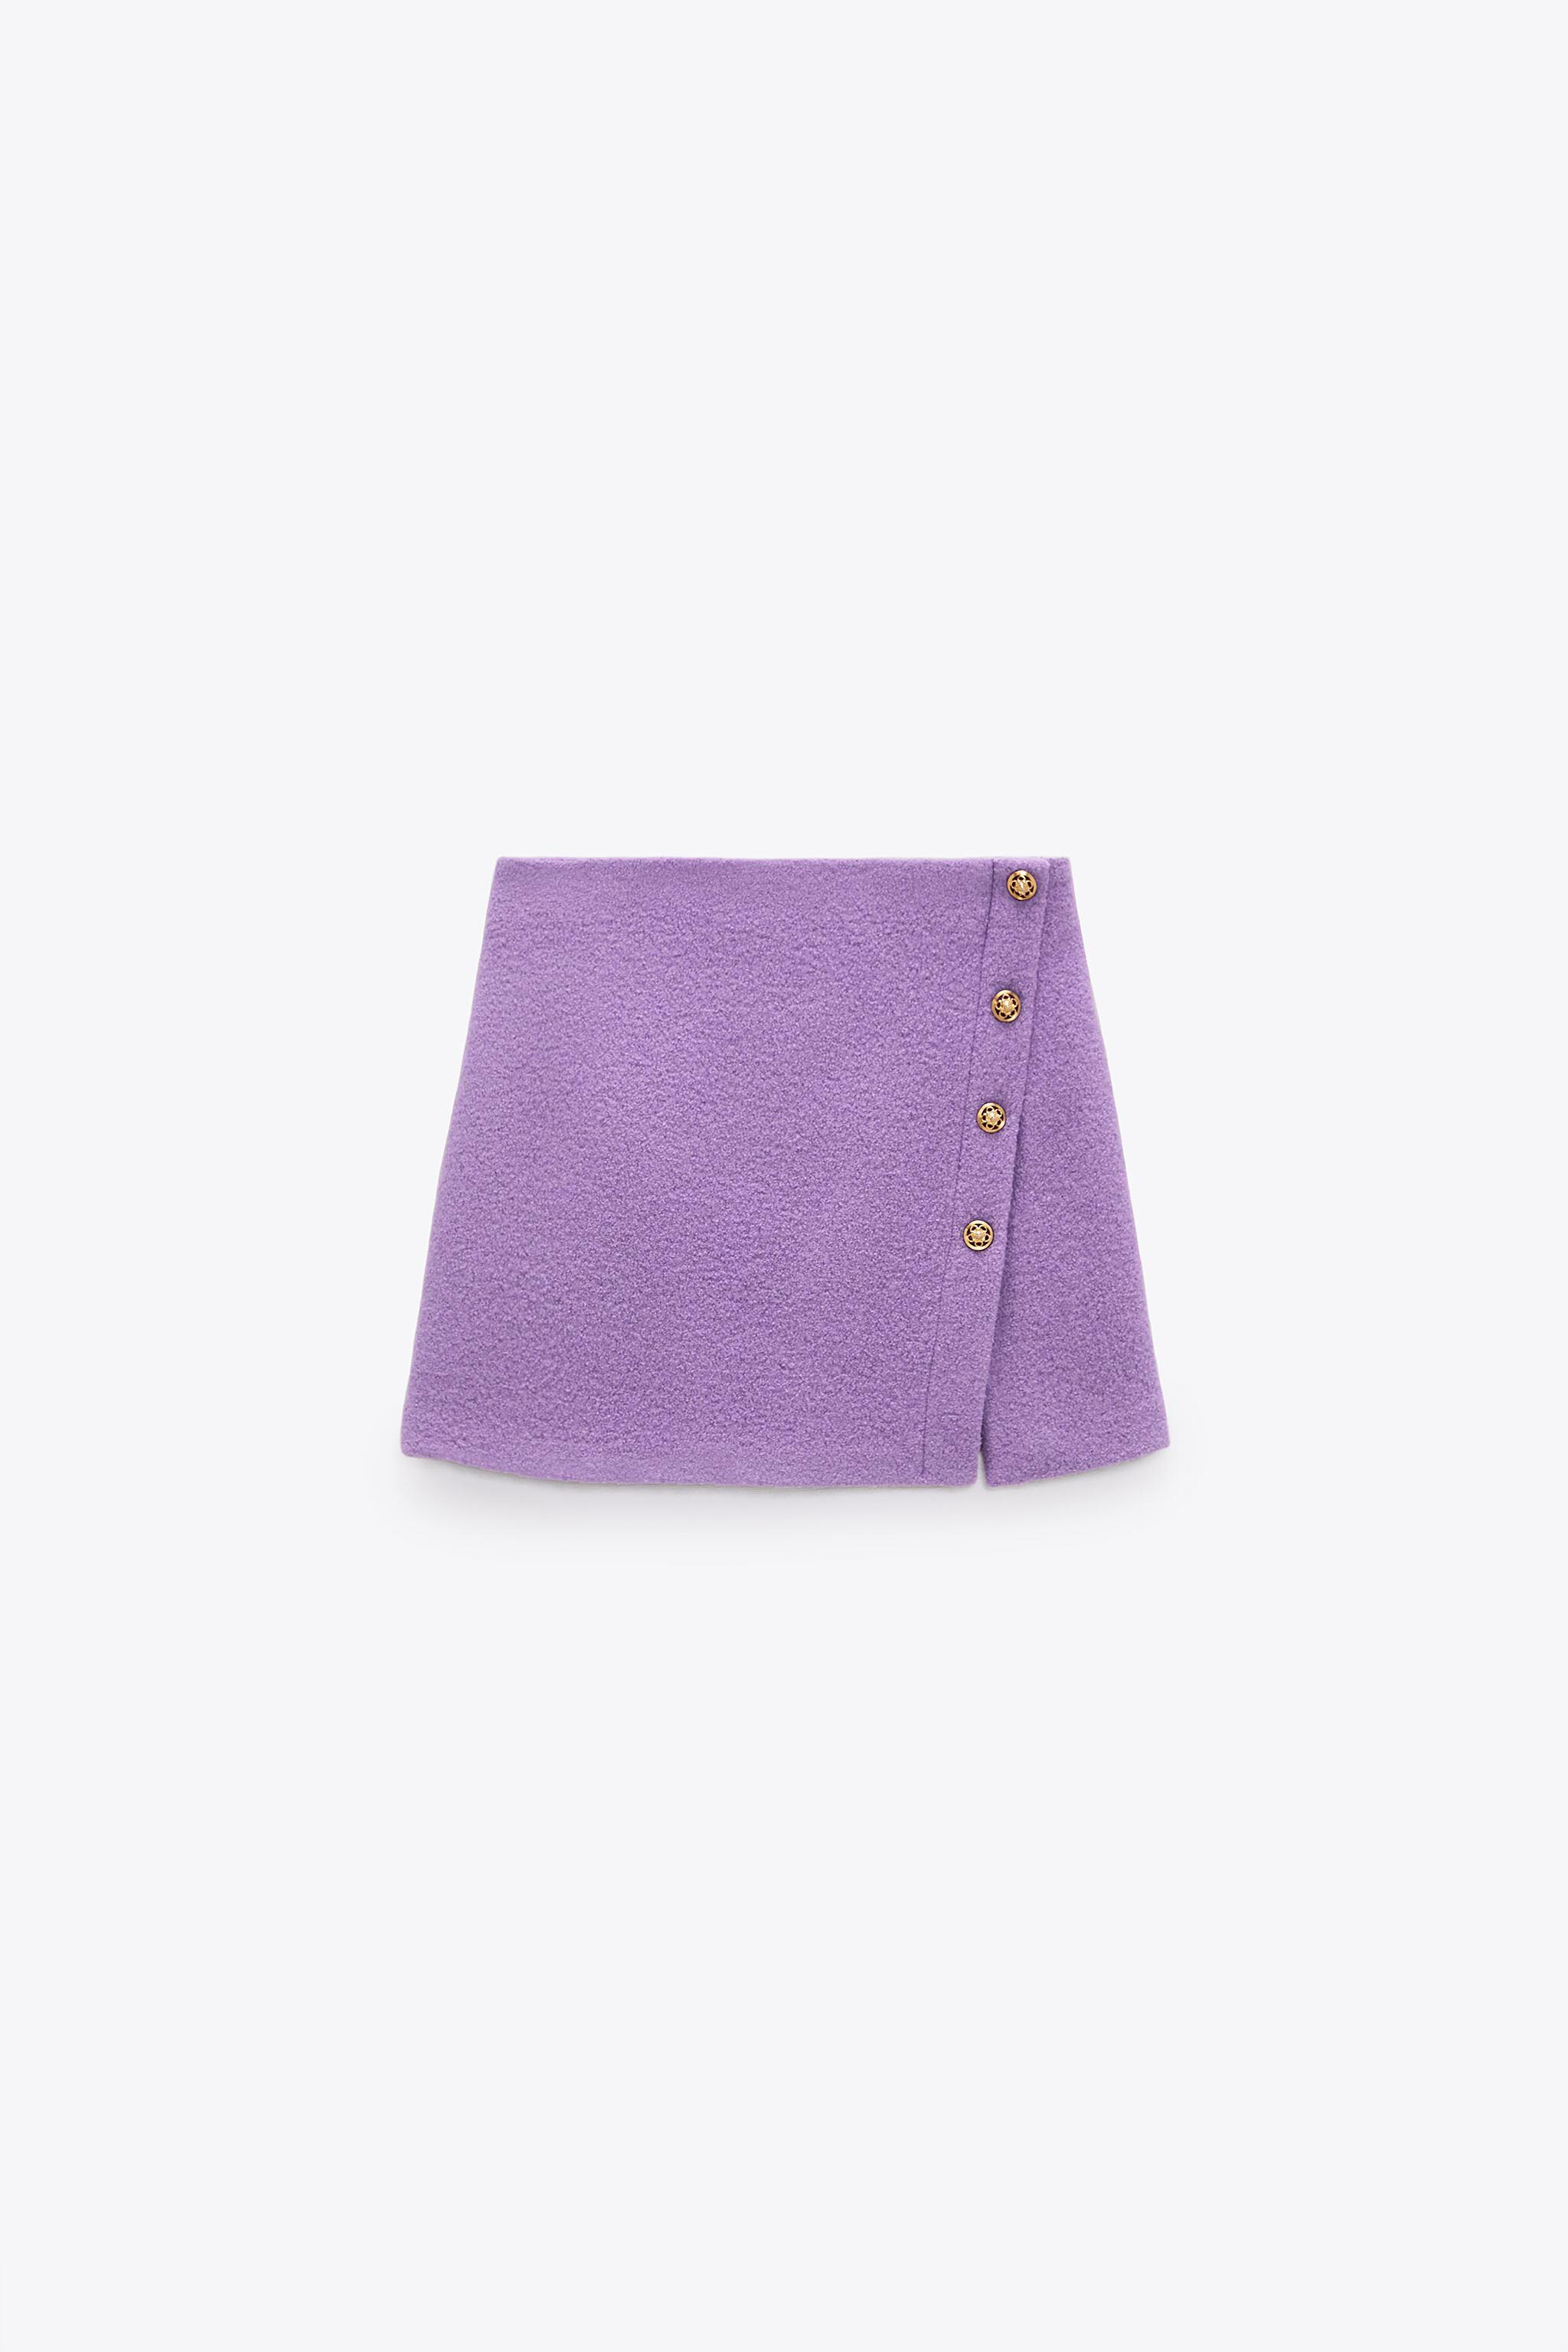 LIMITED EDITION BUTTONED SKIRT 3